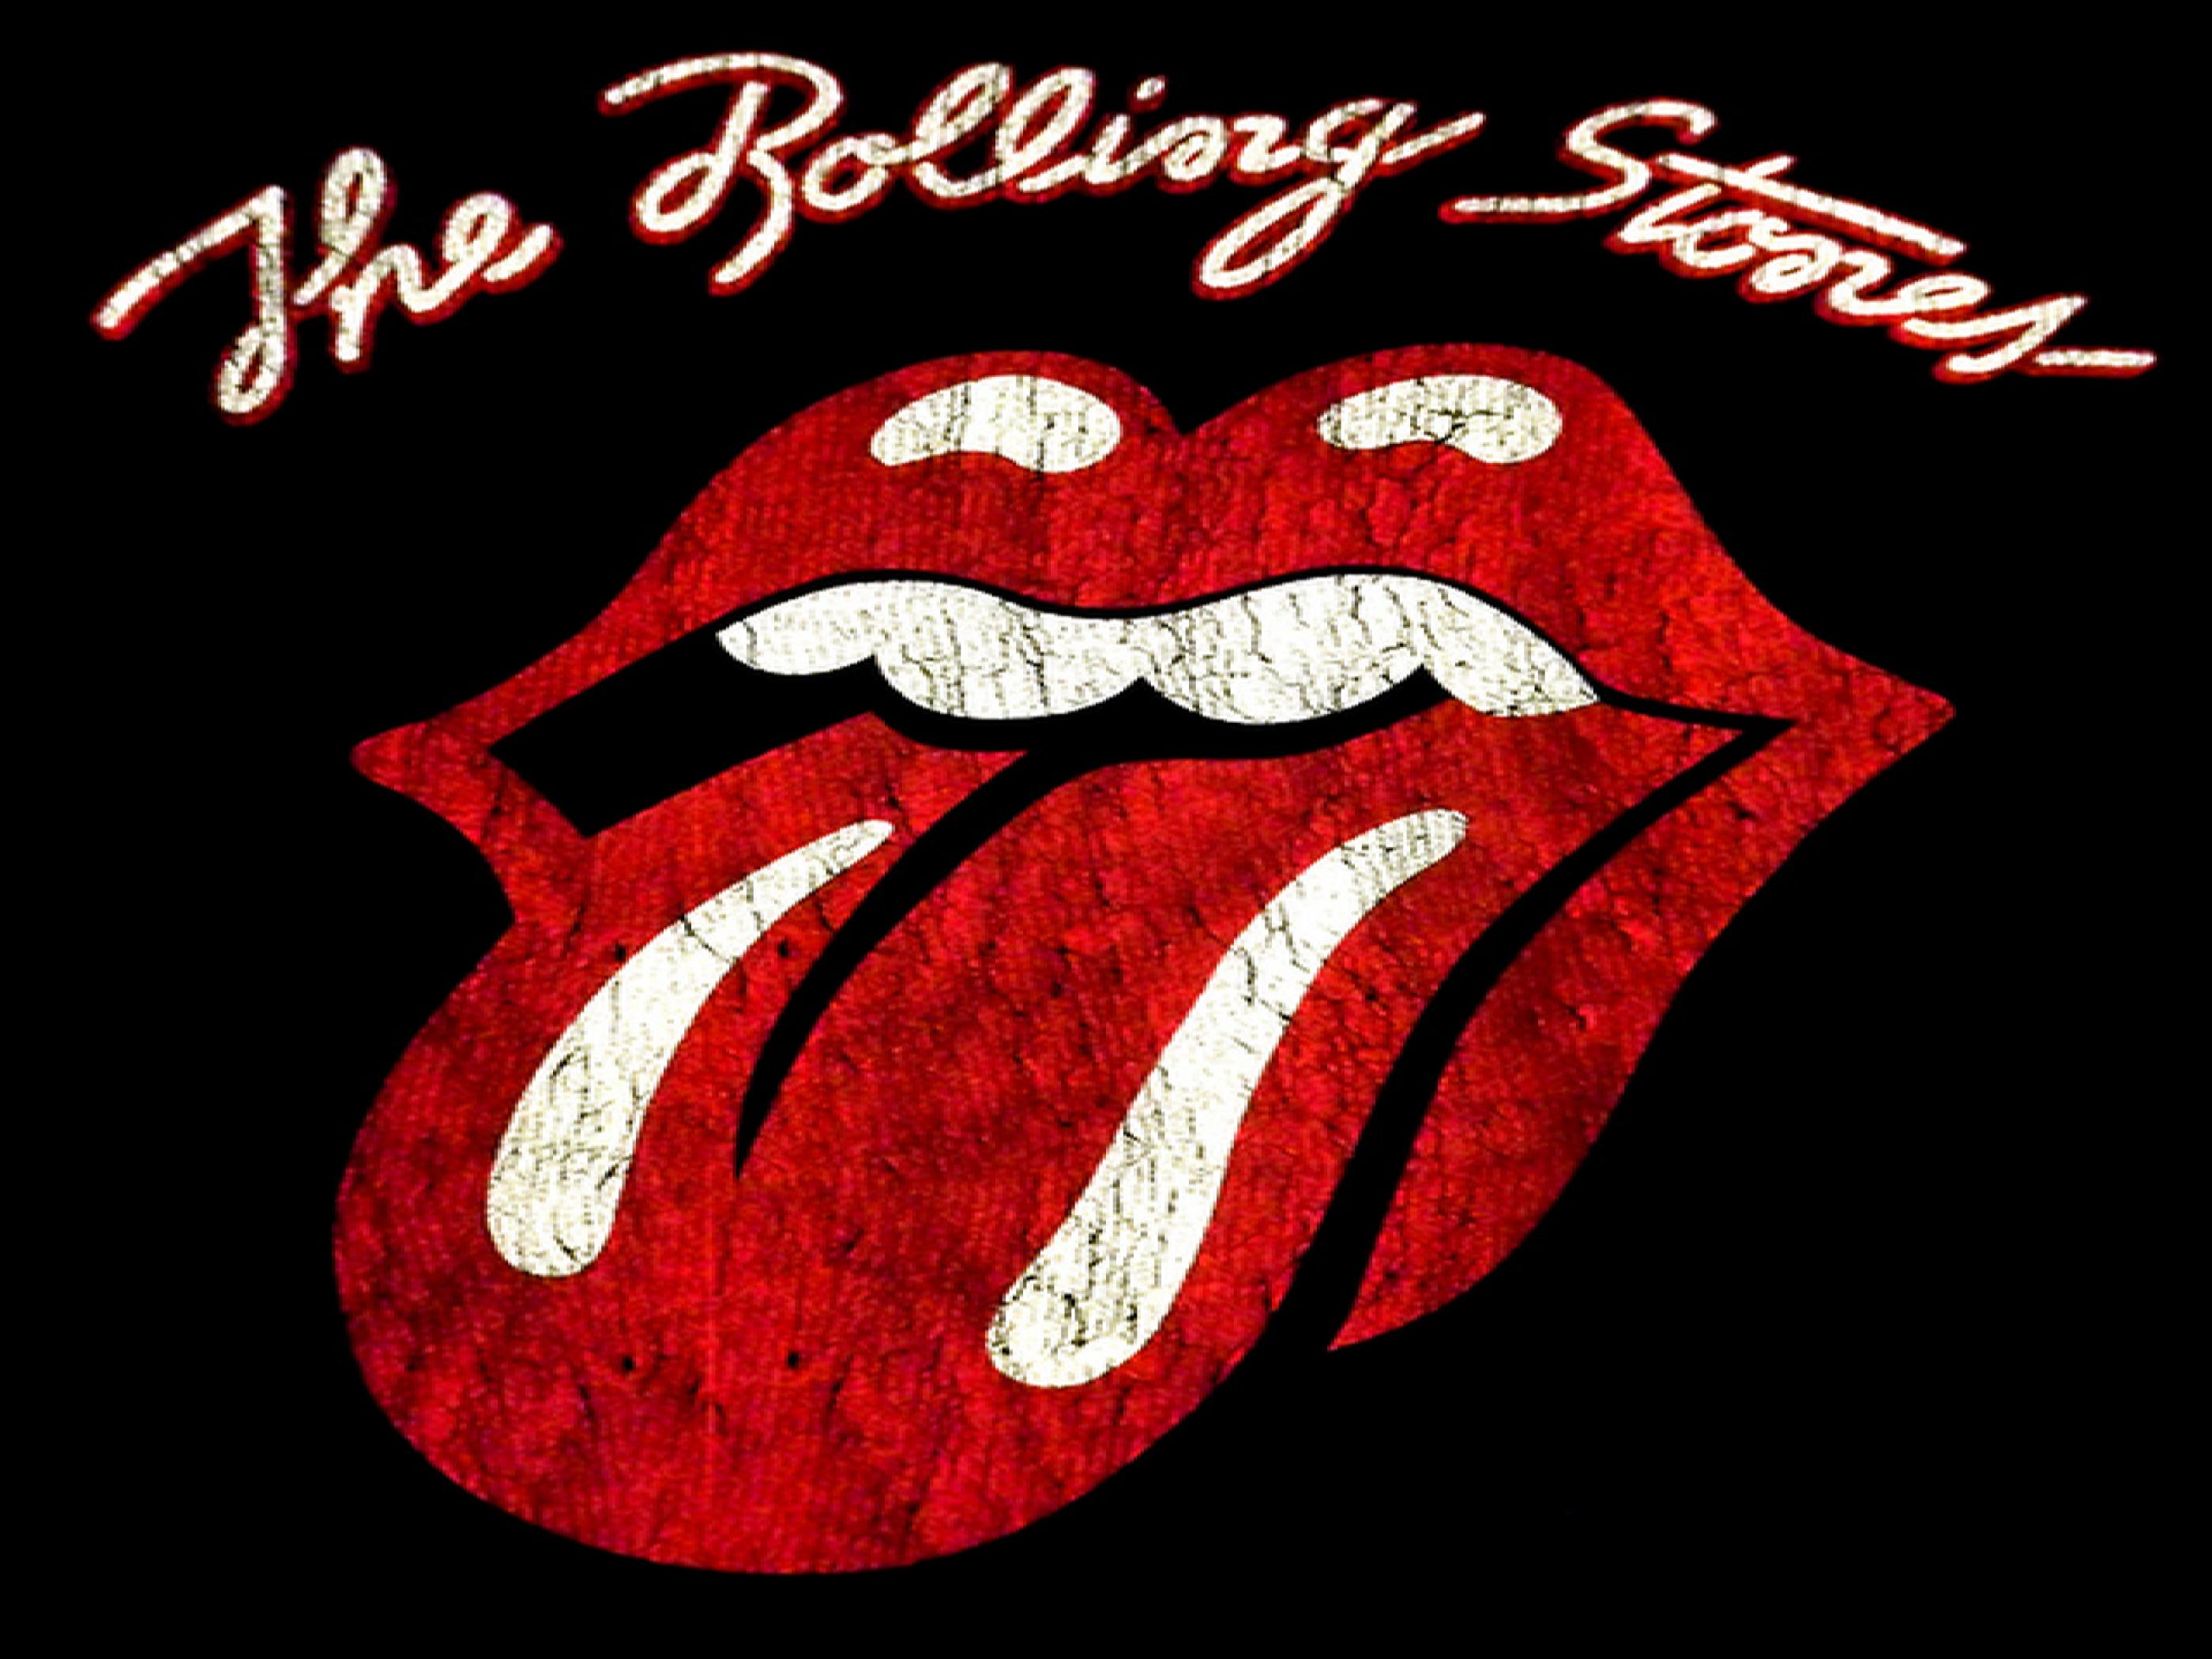 The Rolling Stones Wallpapers Top Free The Rolling Stones Backgrounds Wallpaperaccess